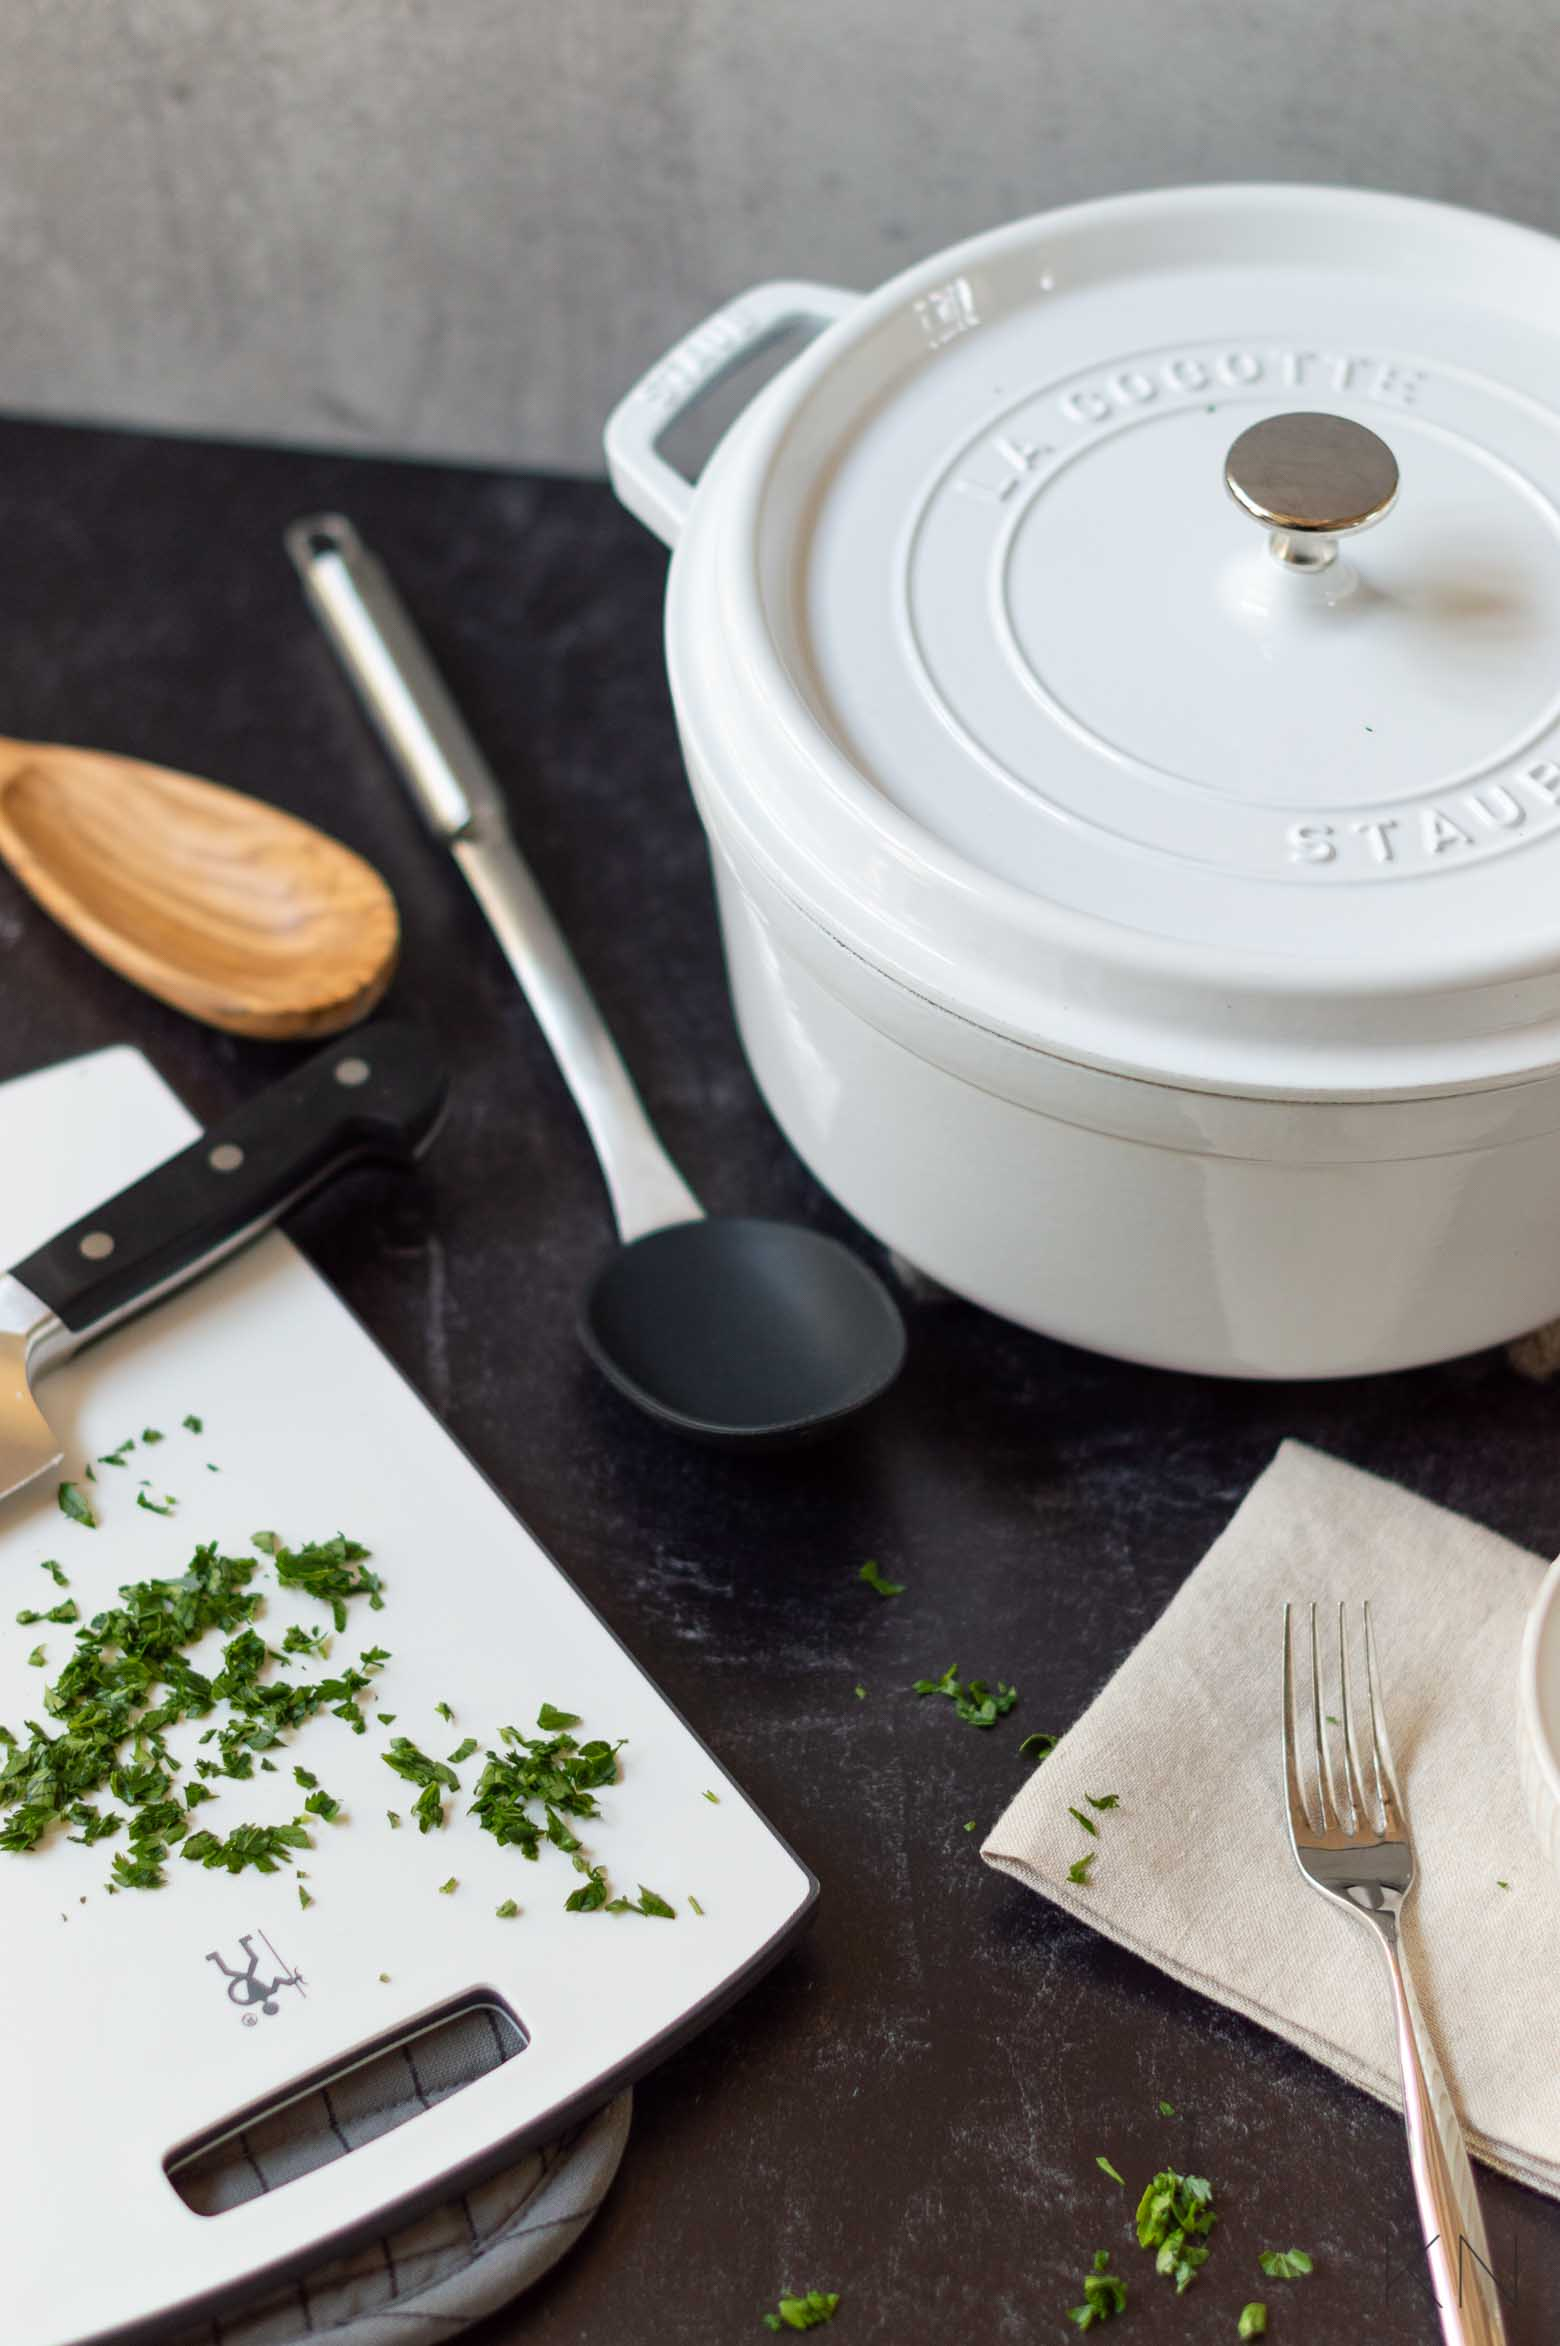 Favorite Staub Bakeware and Cookware in the Kitchen